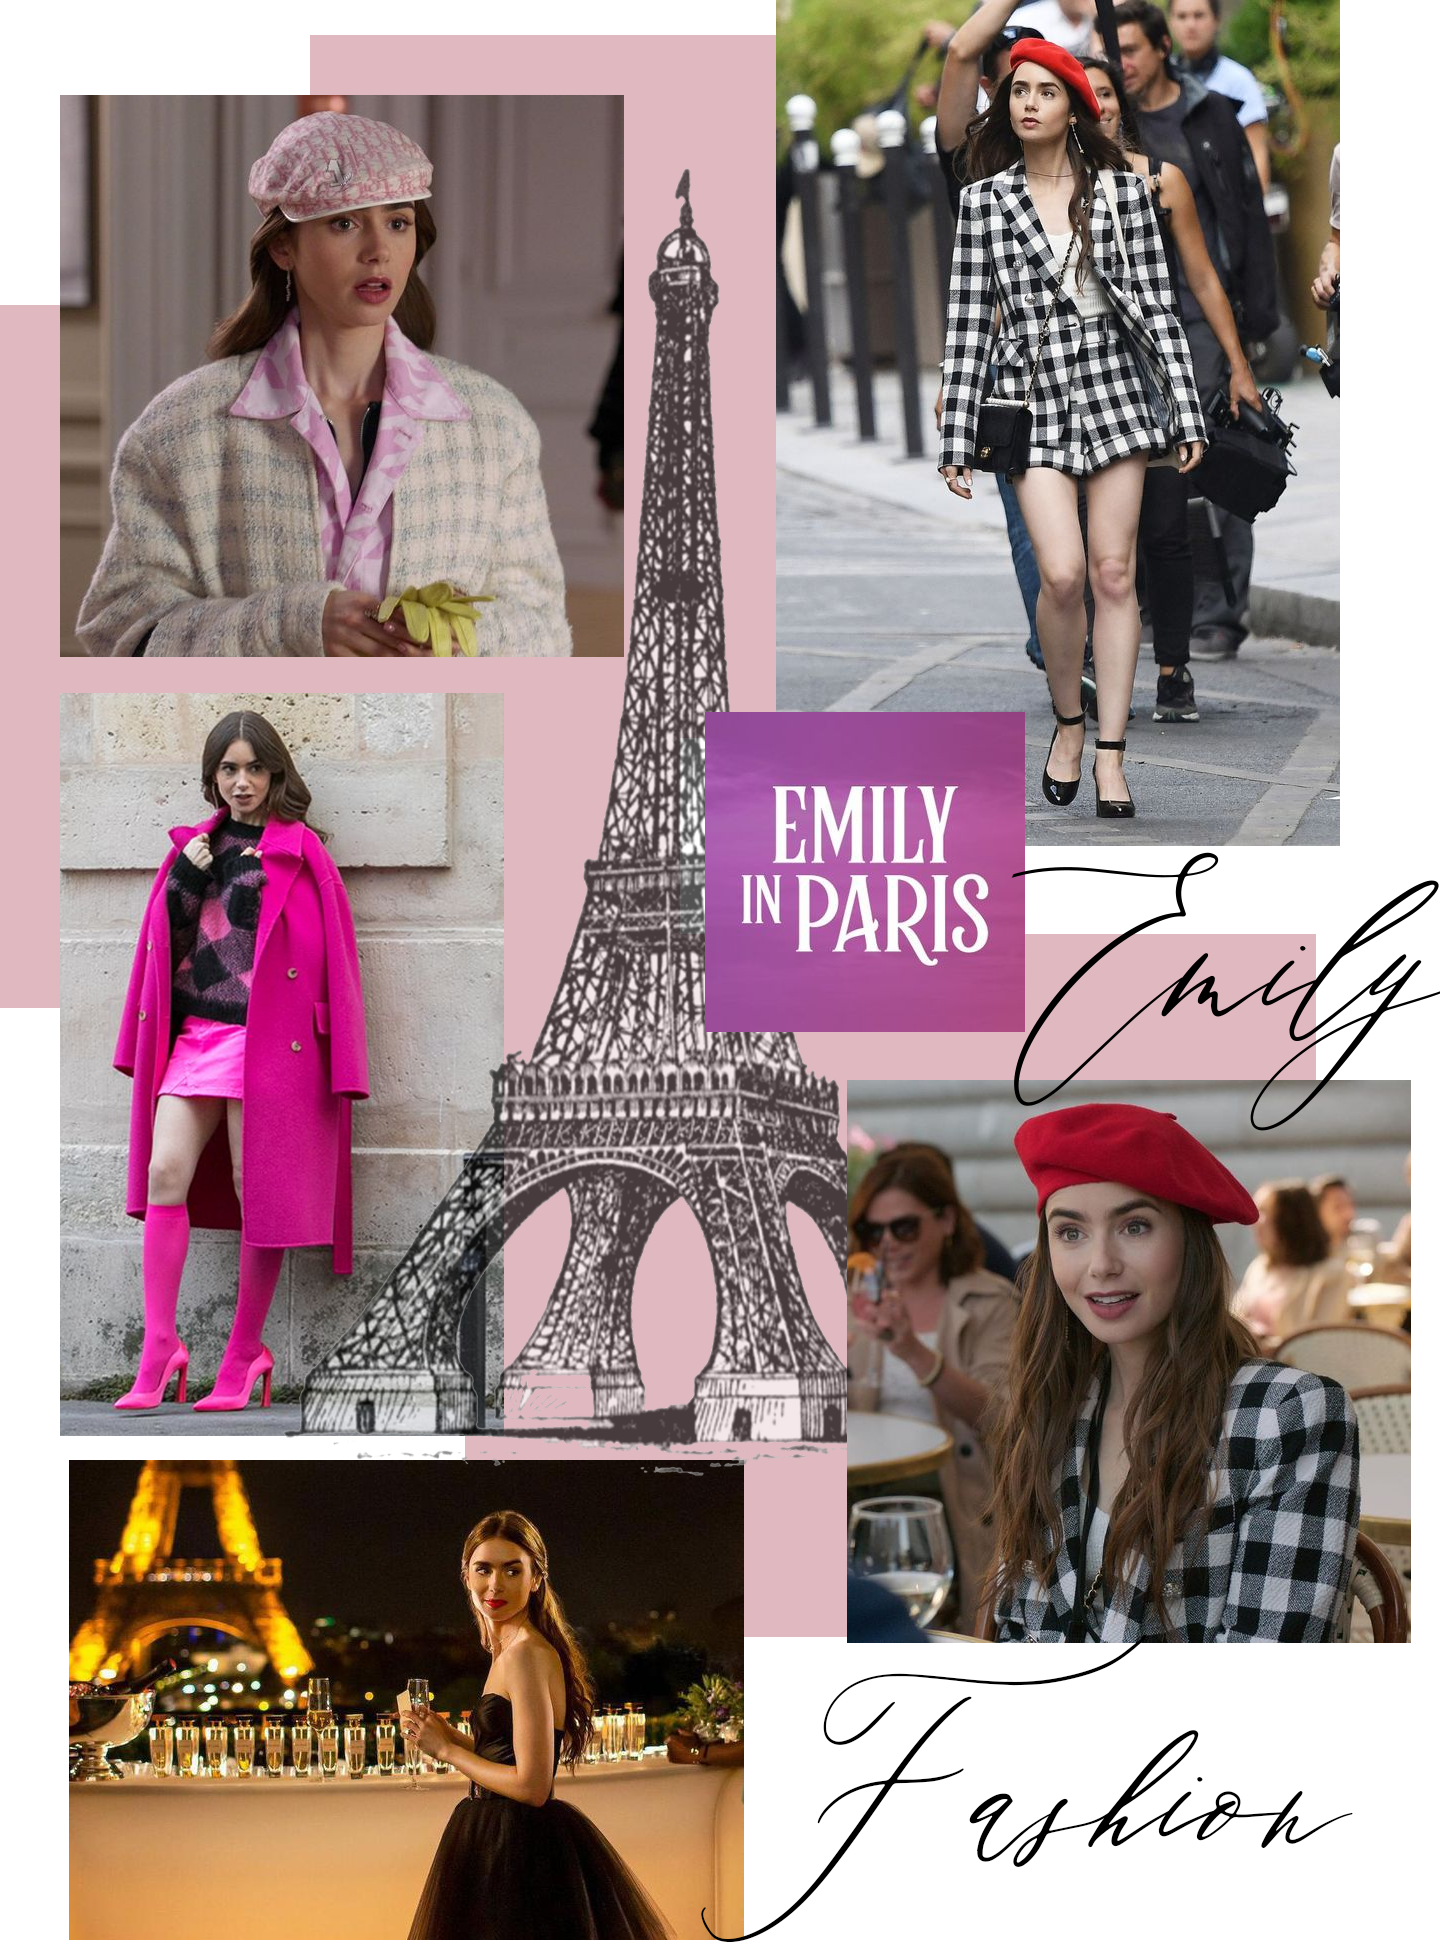 Emily in Paris Inspired Fashion and Style Collage made by Entertainment and Style